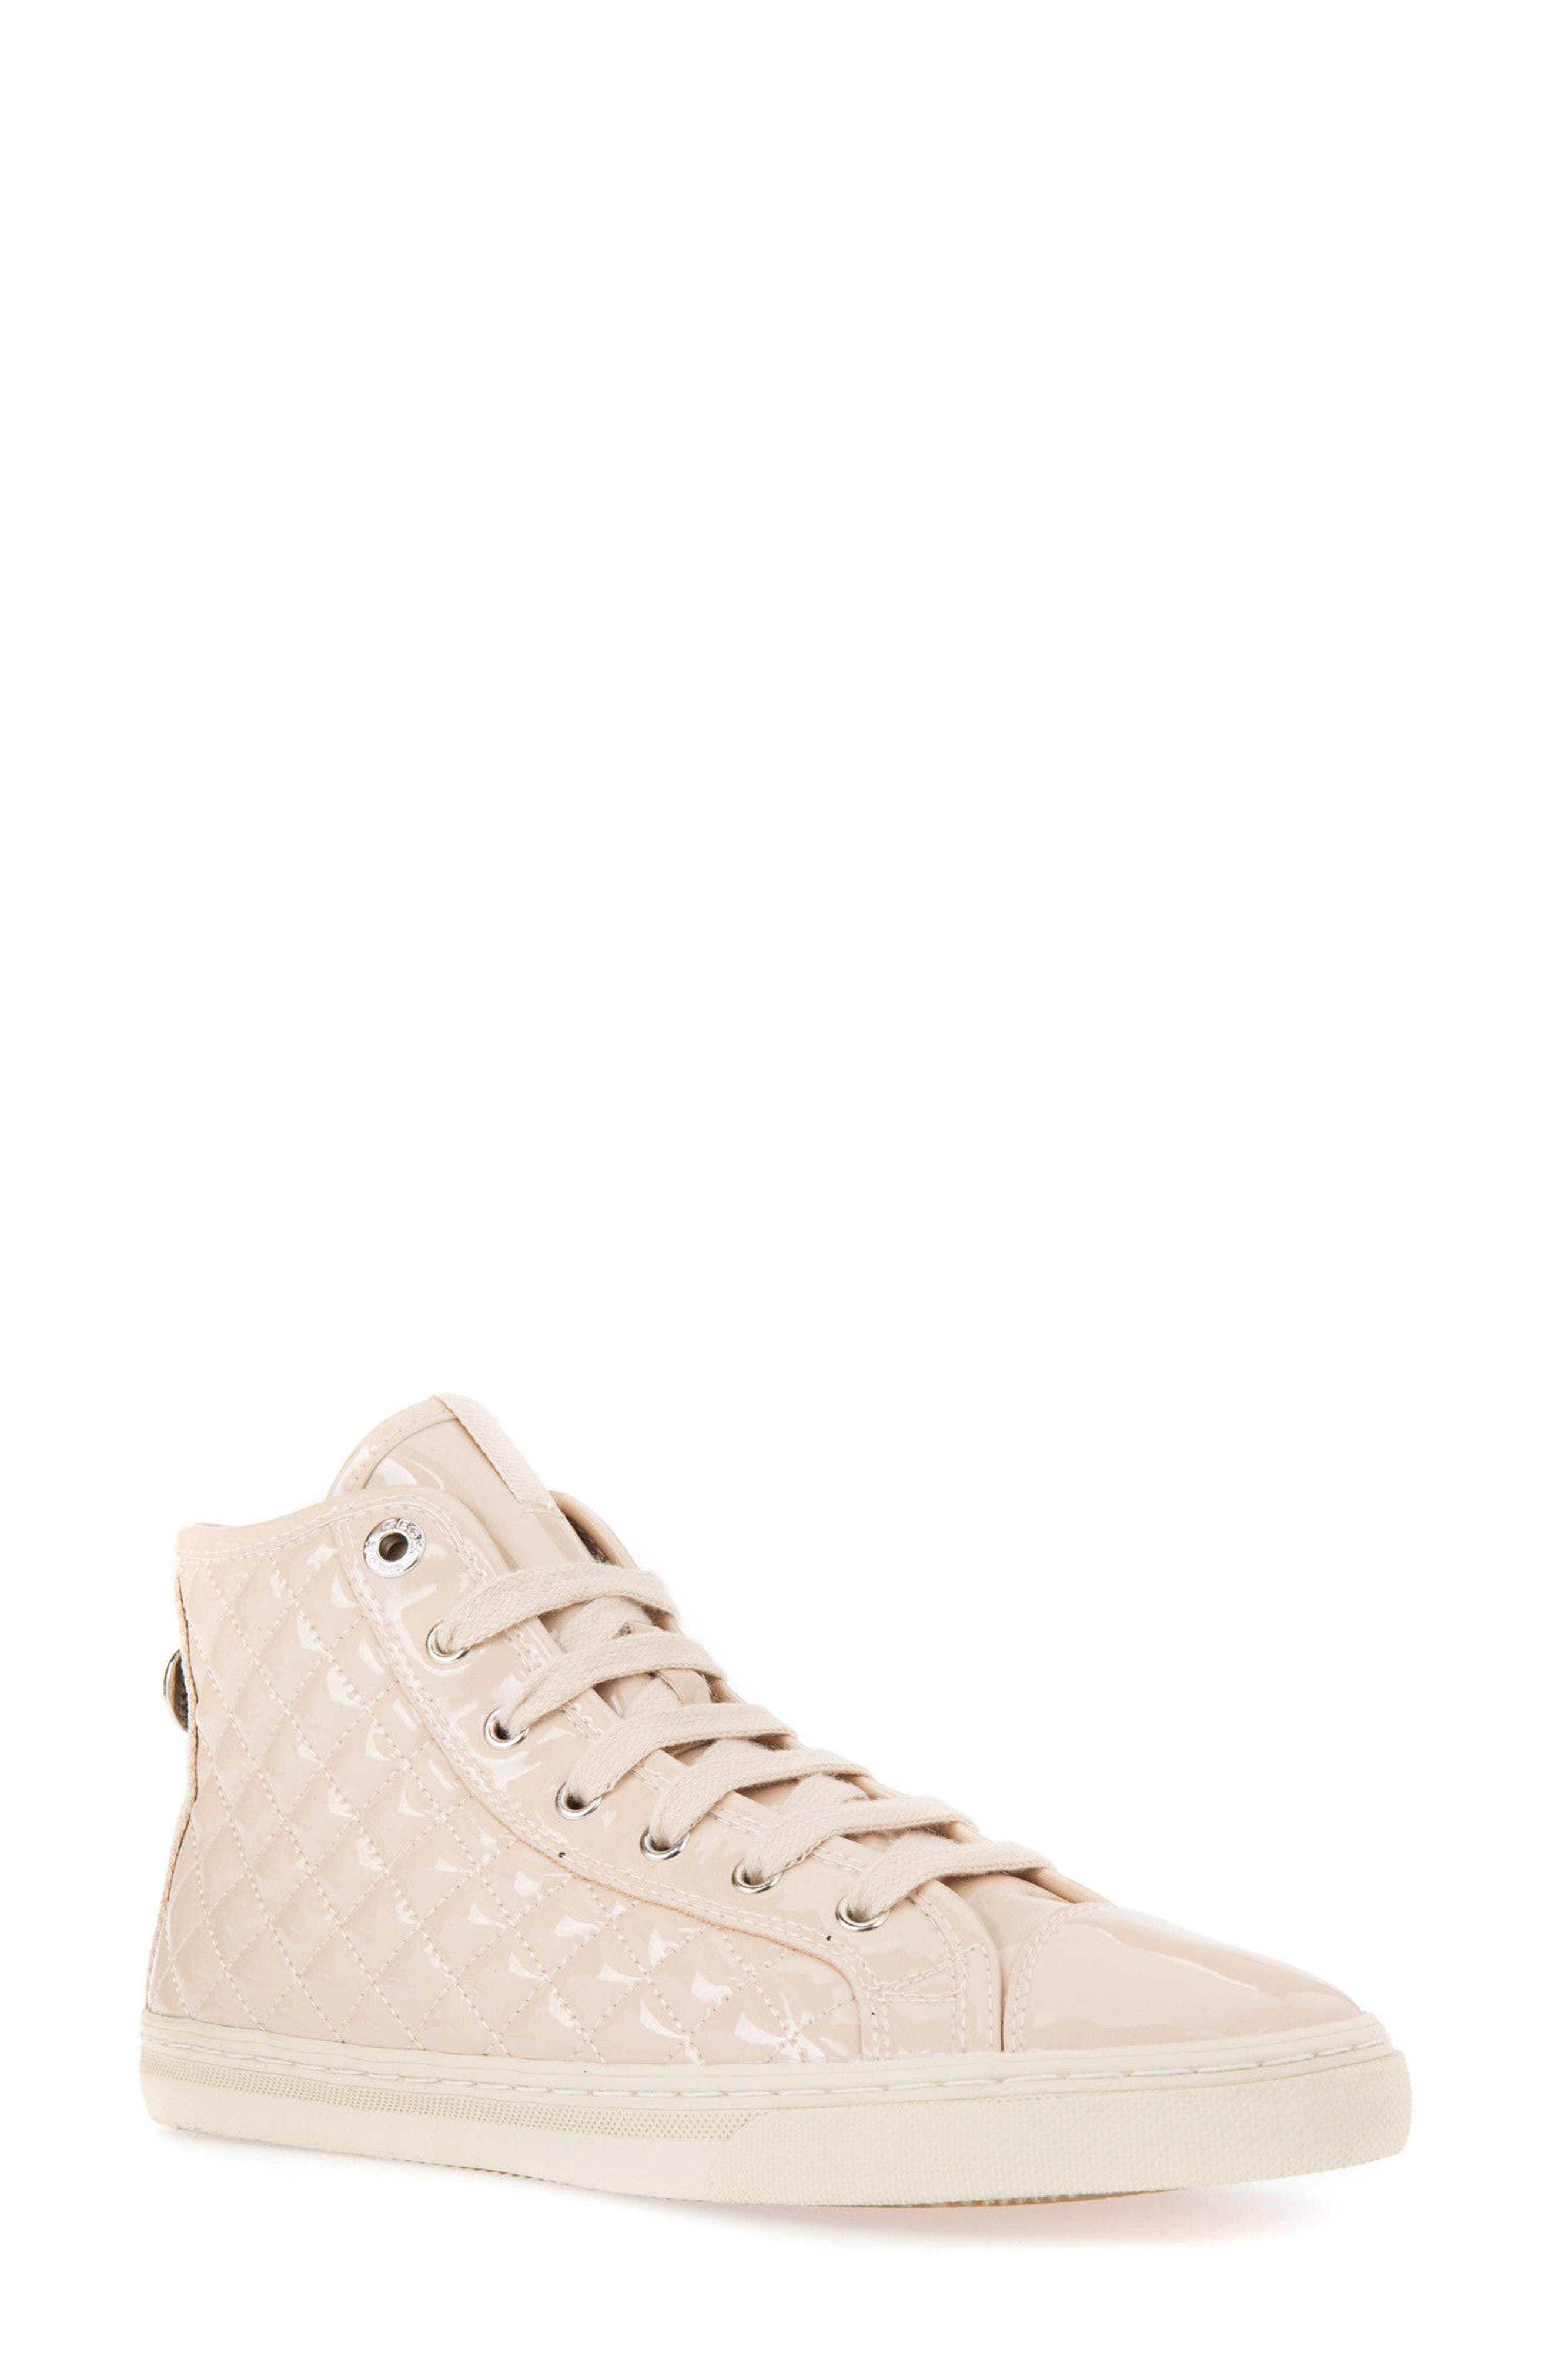 Geox 'New Club' High Top Sneaker (Women)